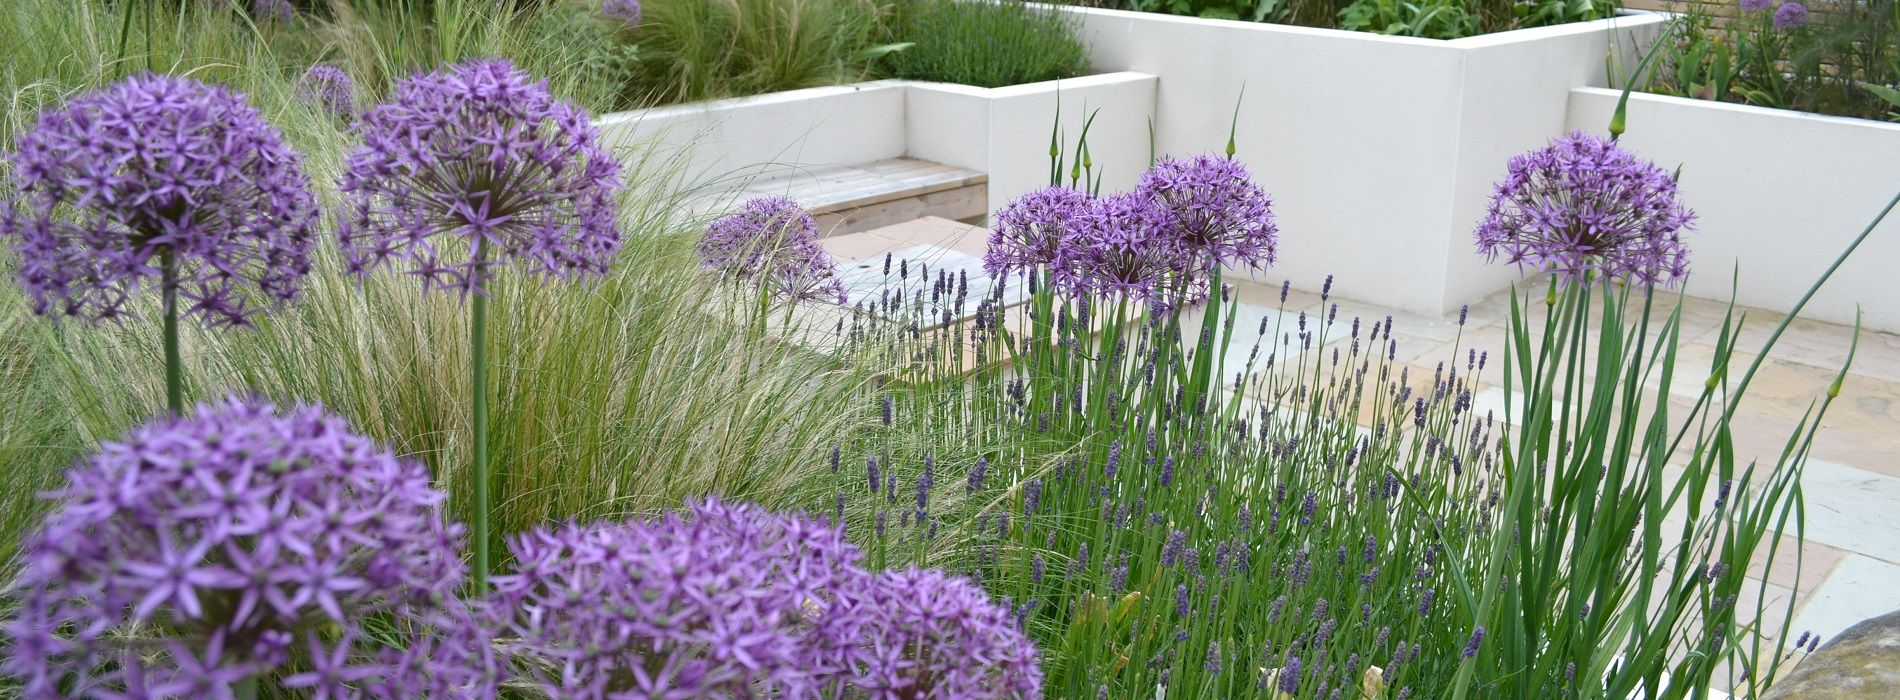 Tracy Foster Garden Design